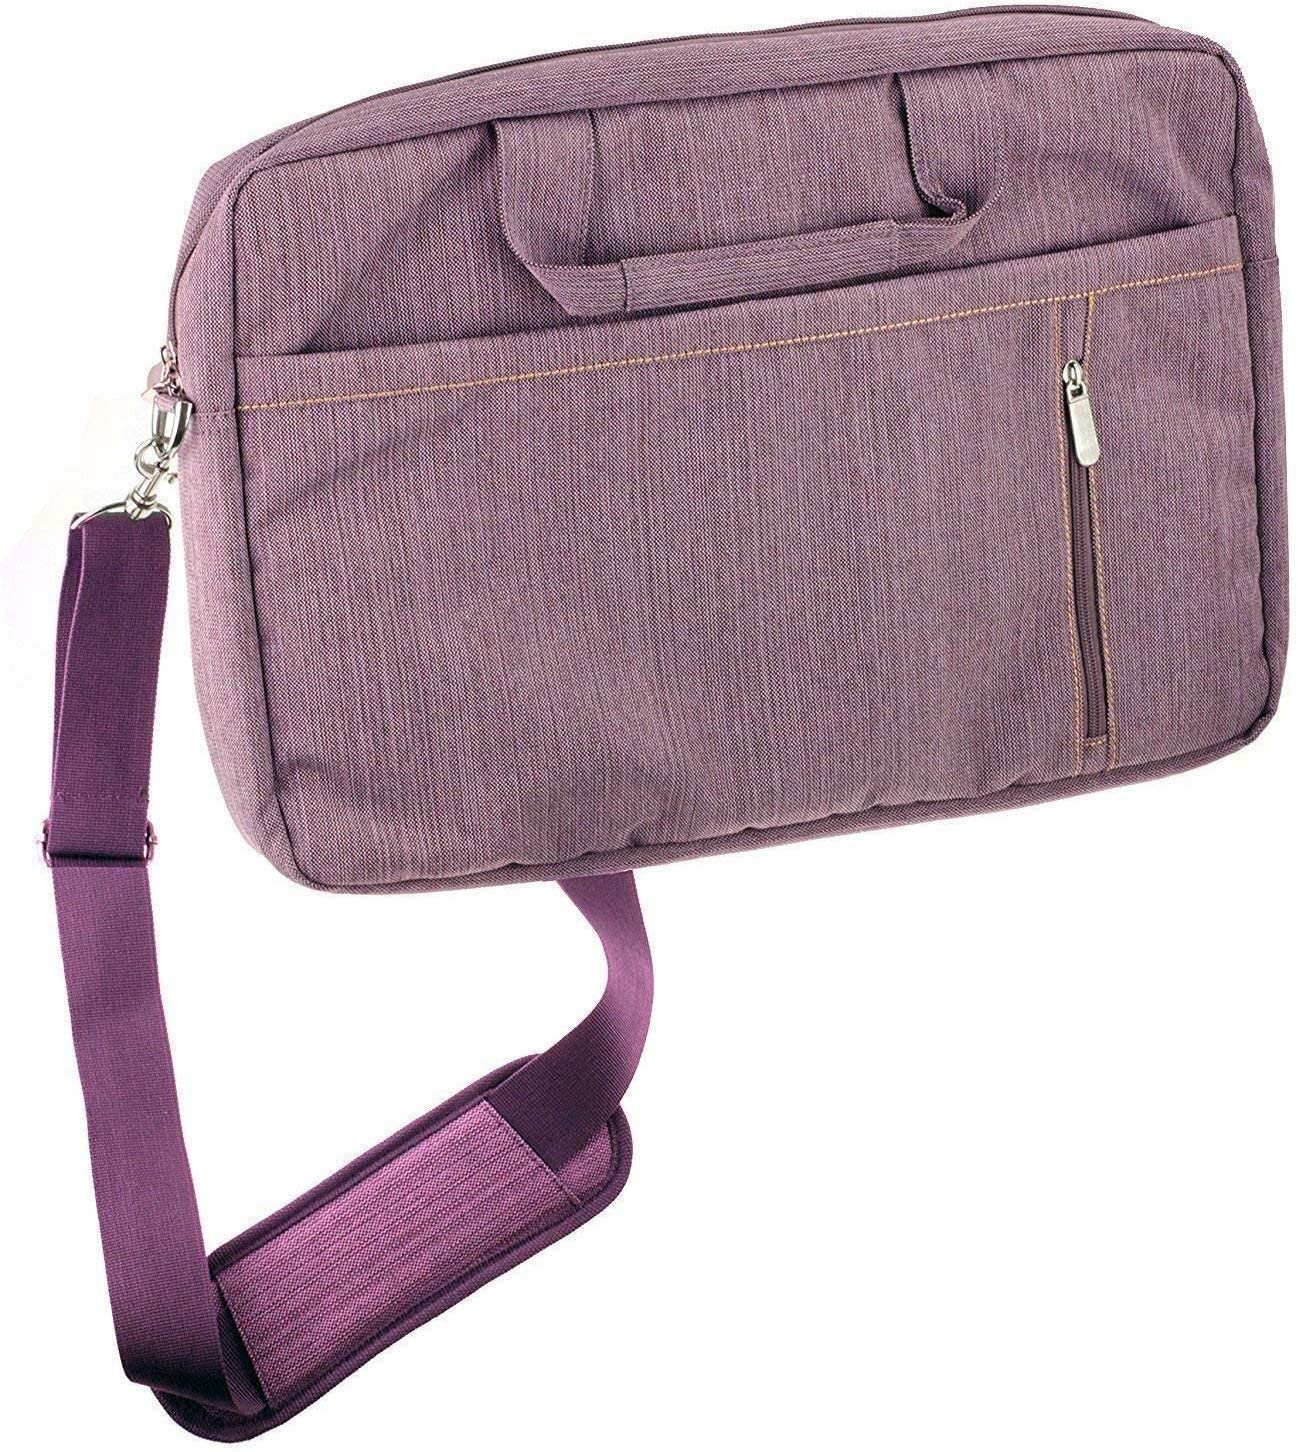 Navitech Purple Sleek Premium Water Resistant Laptop Bag - Compatible with The Legion 5i 15.6